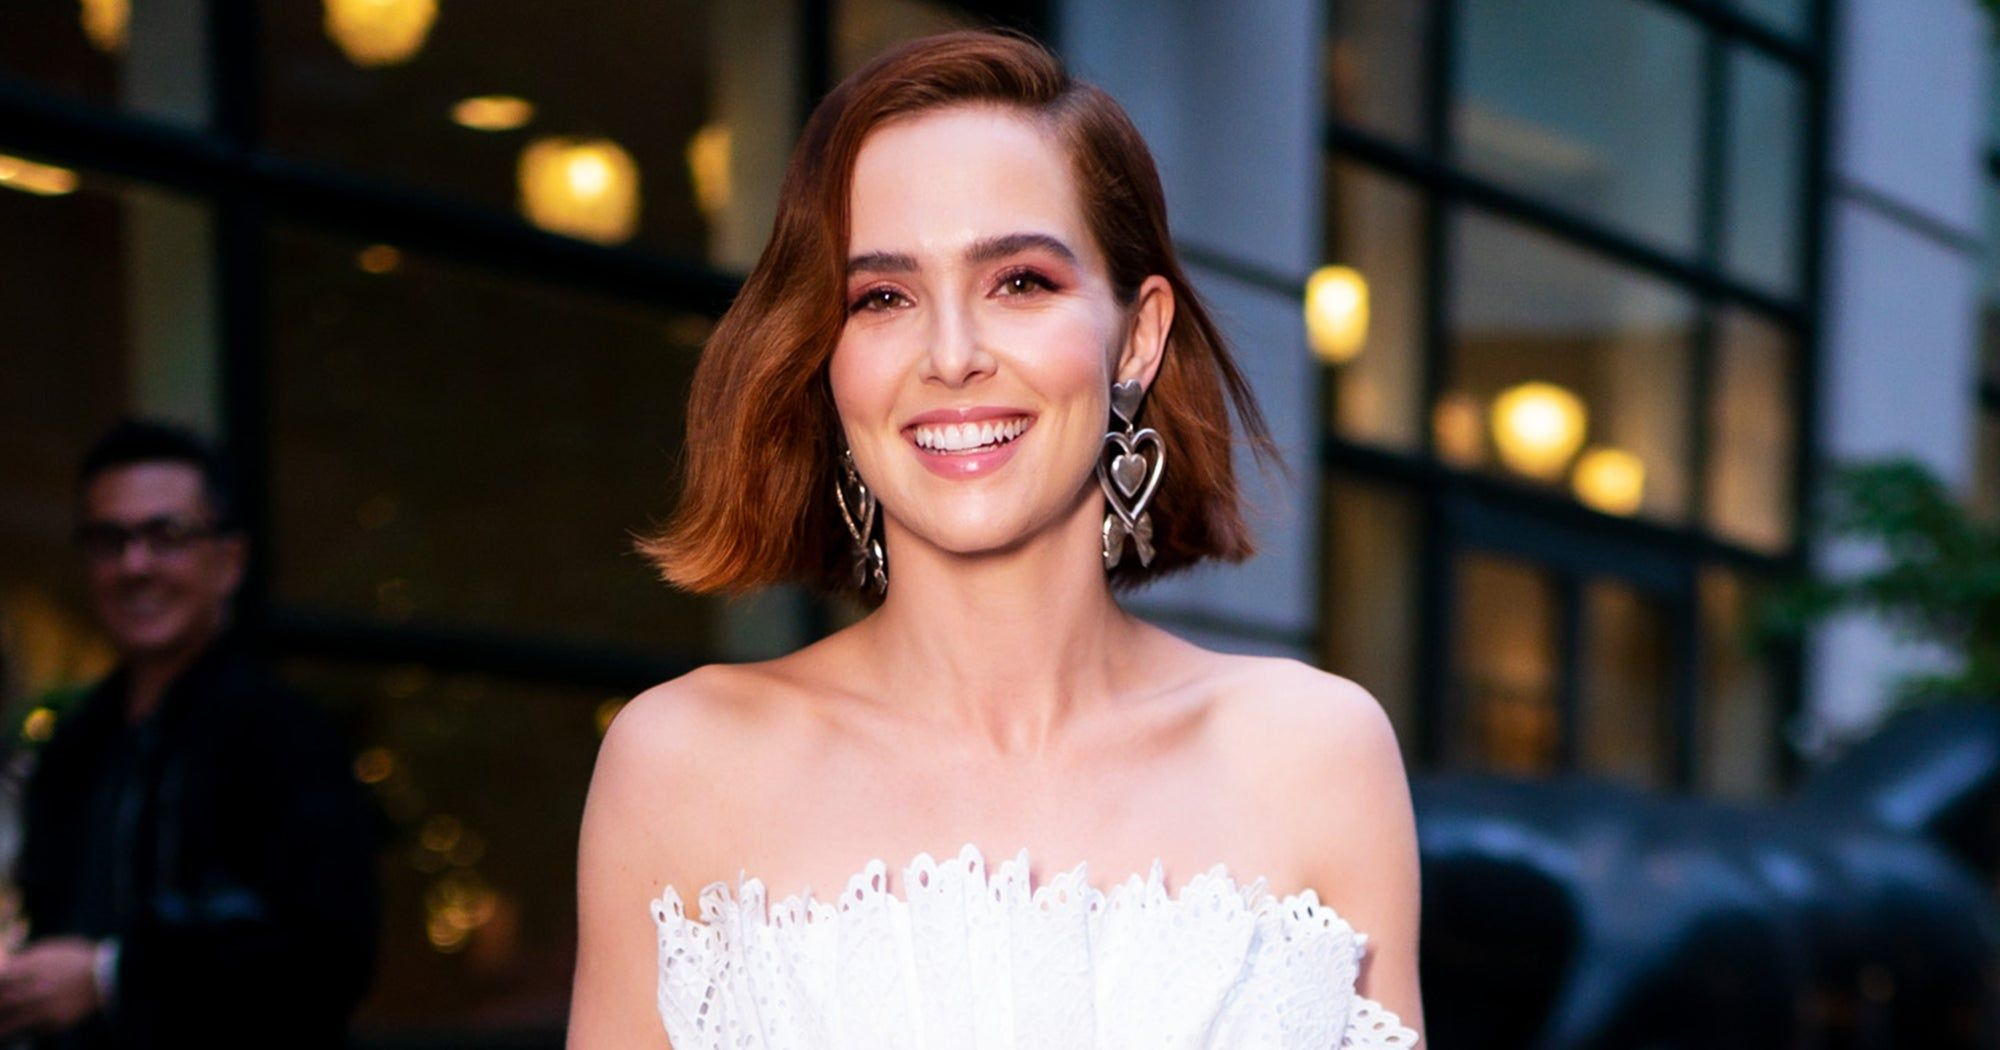 This Is The Warmest Hair-Color Trend Of Fall 2019 #platinumblondehighlights